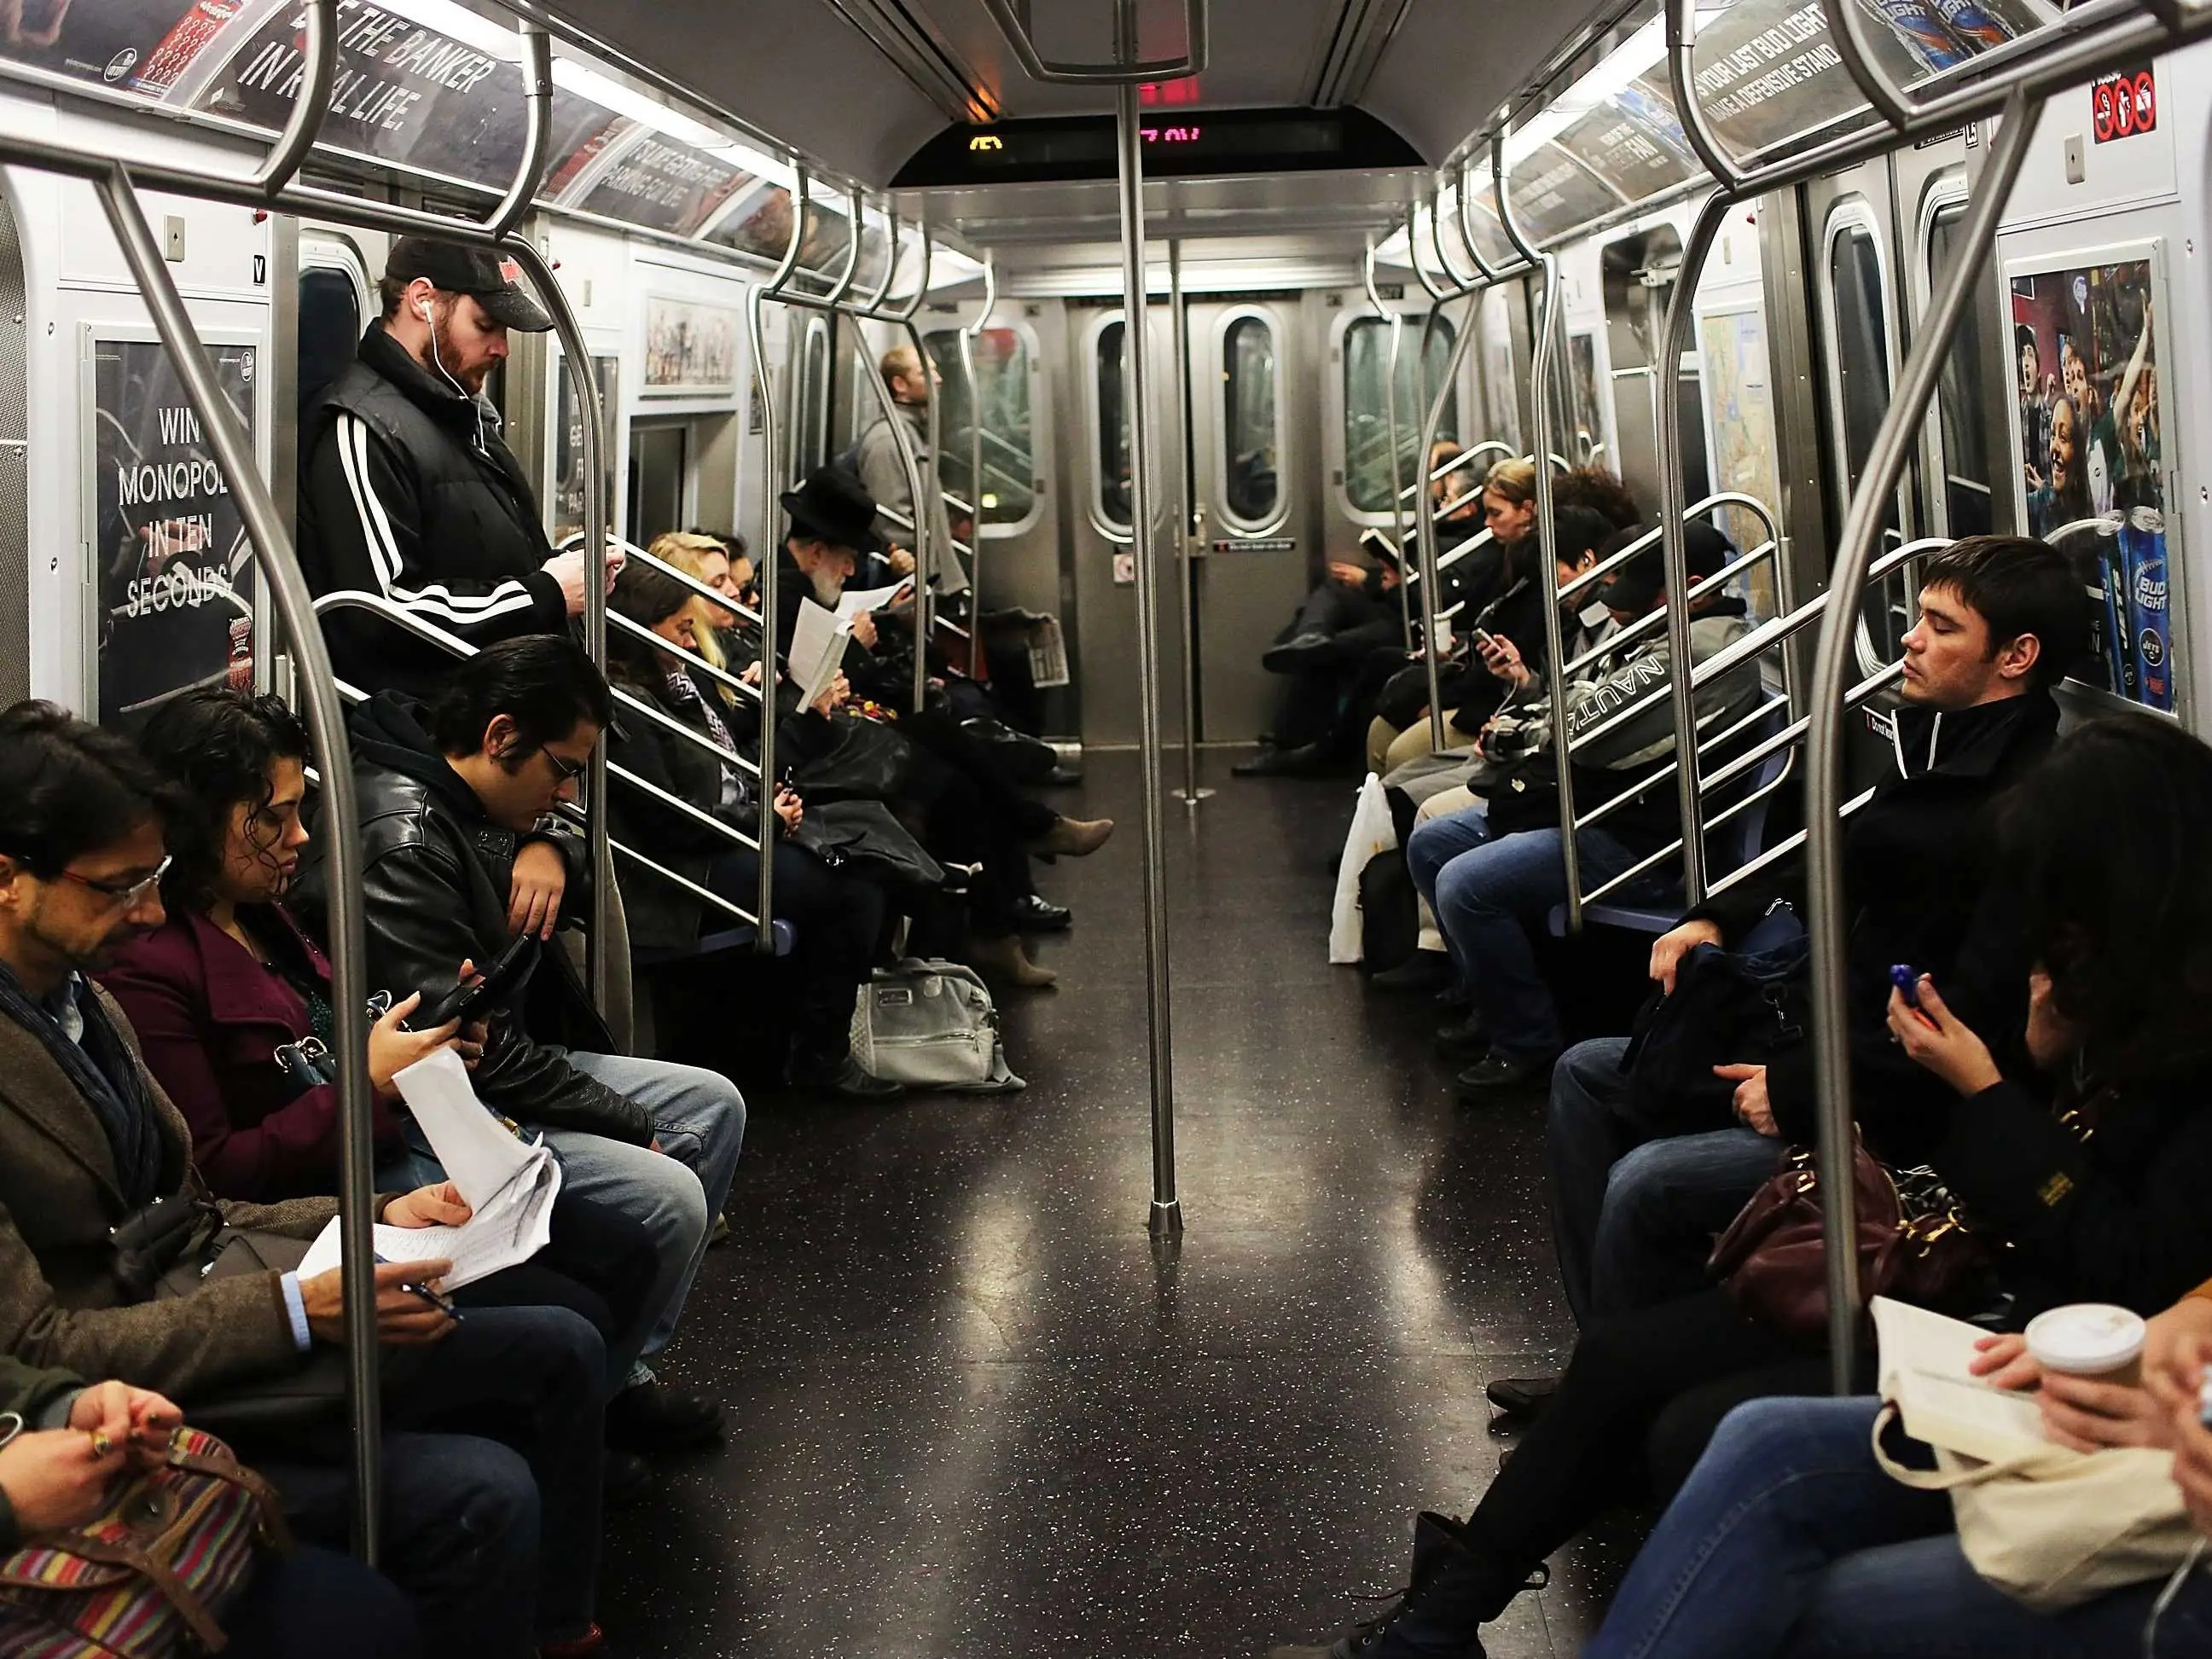 Public Transportation Is Better For Health Than Driving